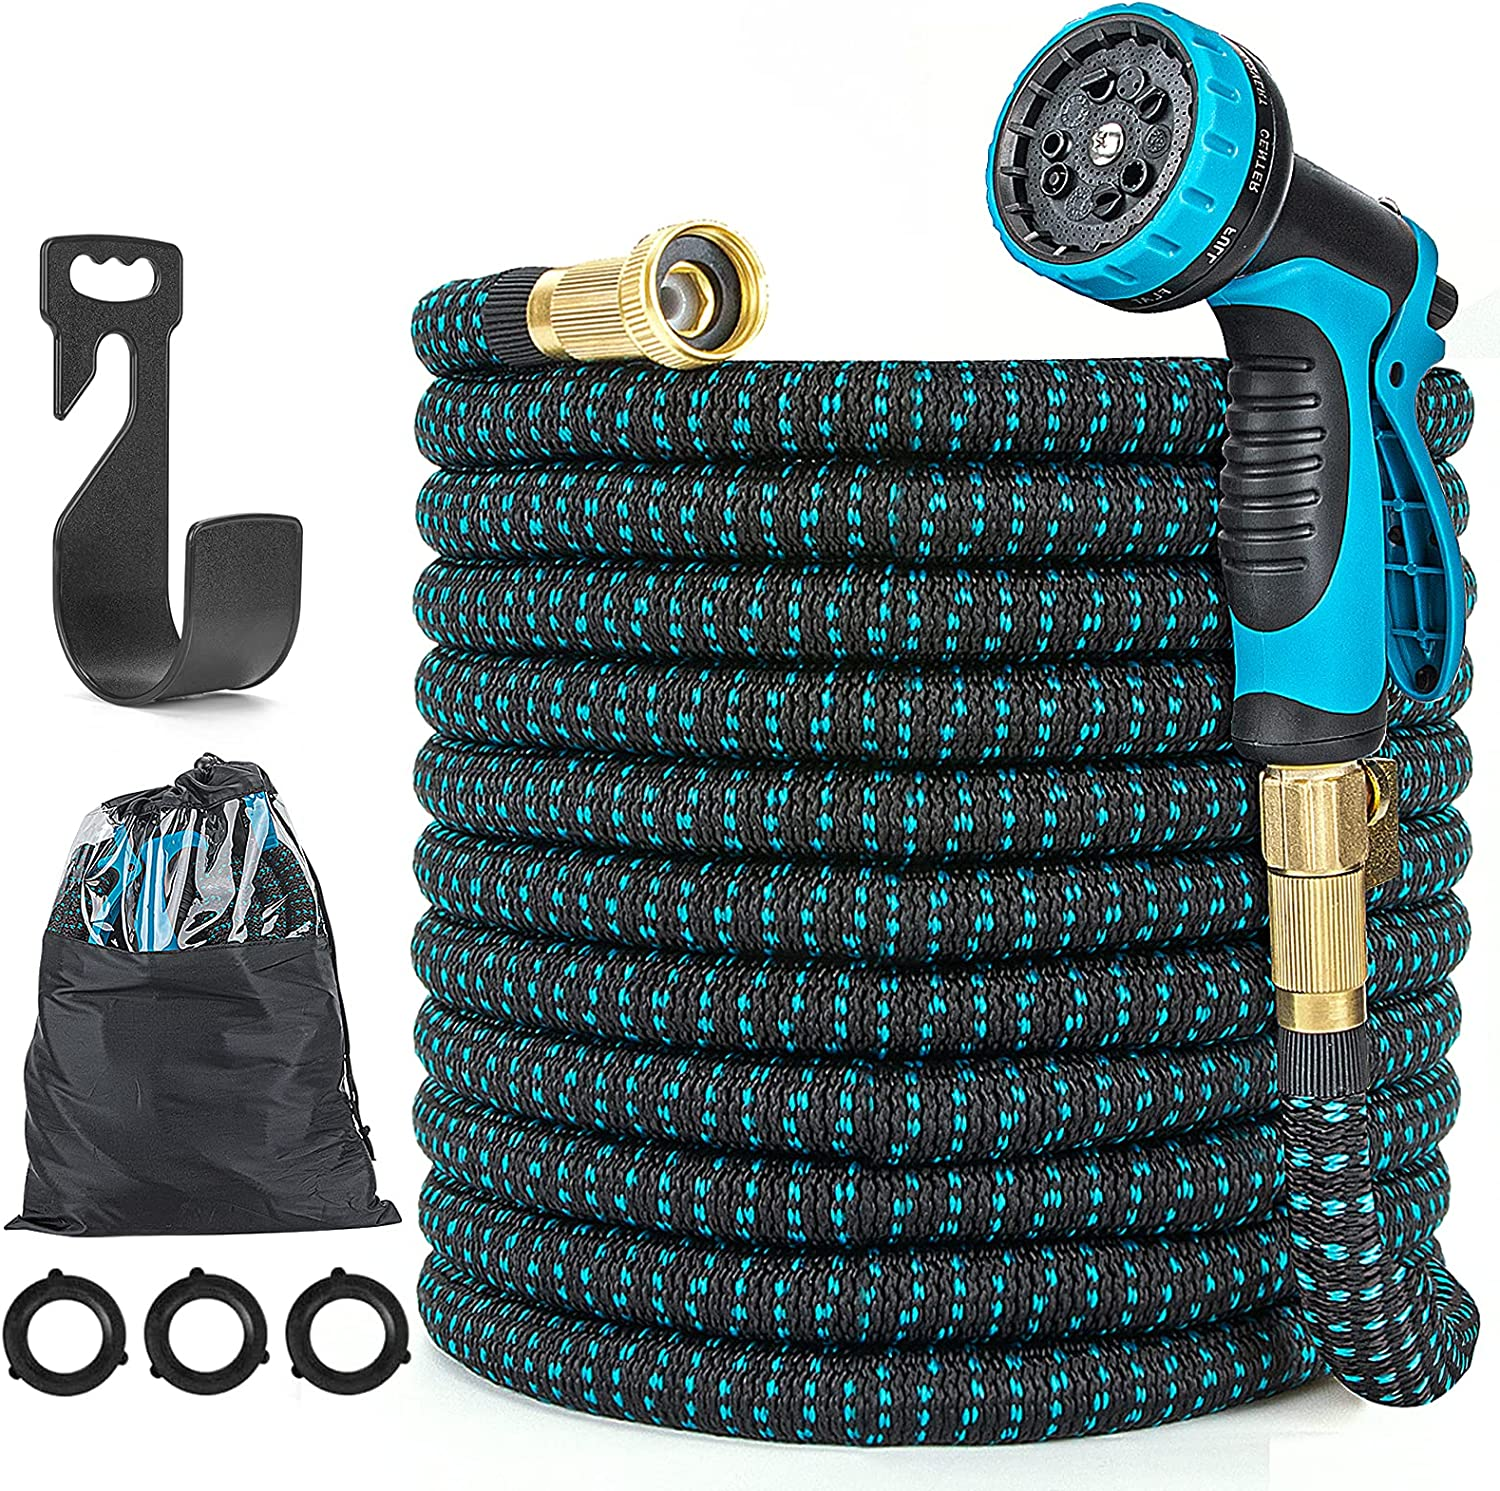 Expandable Garden Hose with 10 Function Nozzle - 100ft Water Hose 3750D 4-Layer Latex Core with 3/4